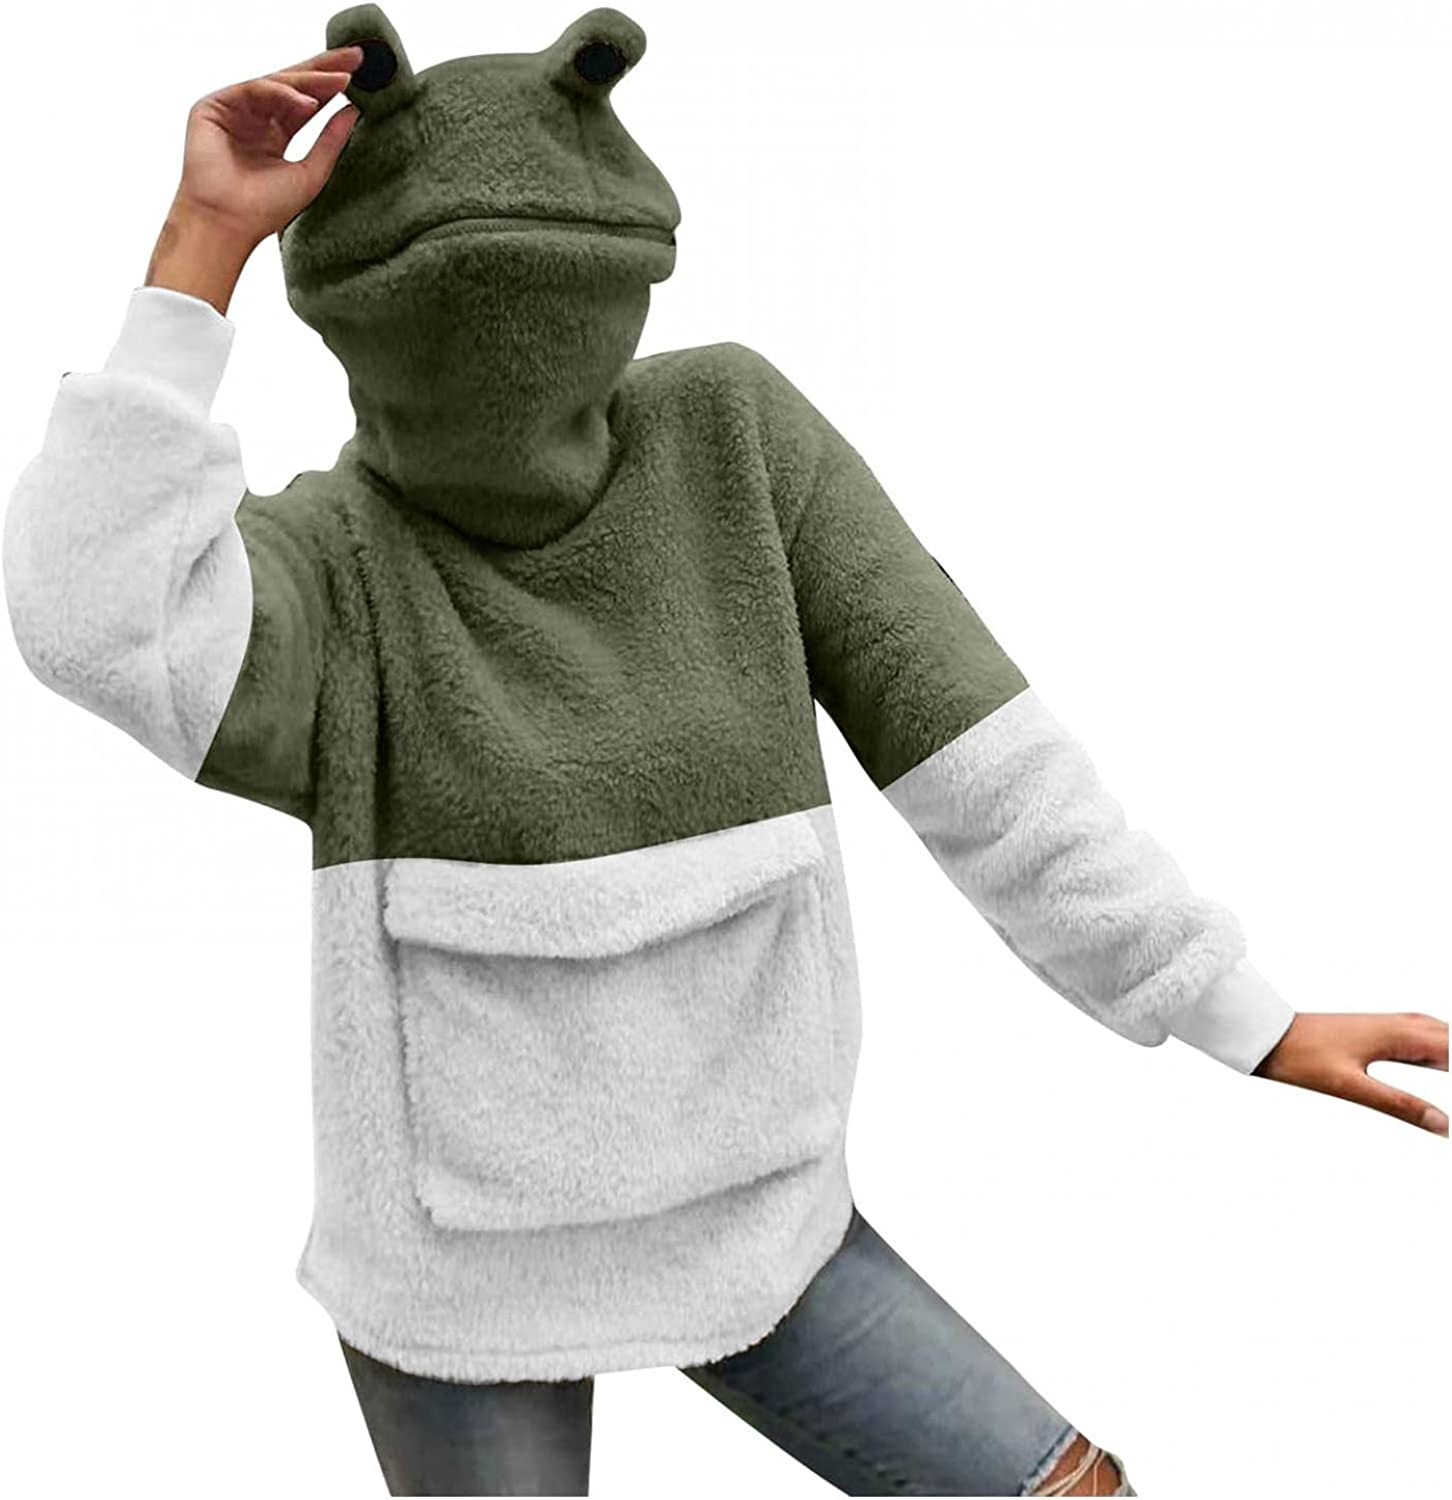 Women's Girl Frog Hooded Pullover With Zip Mouth Hat Patchwork Large Front Pocket Dinosaur Sweatshirt Rabbit Sweater